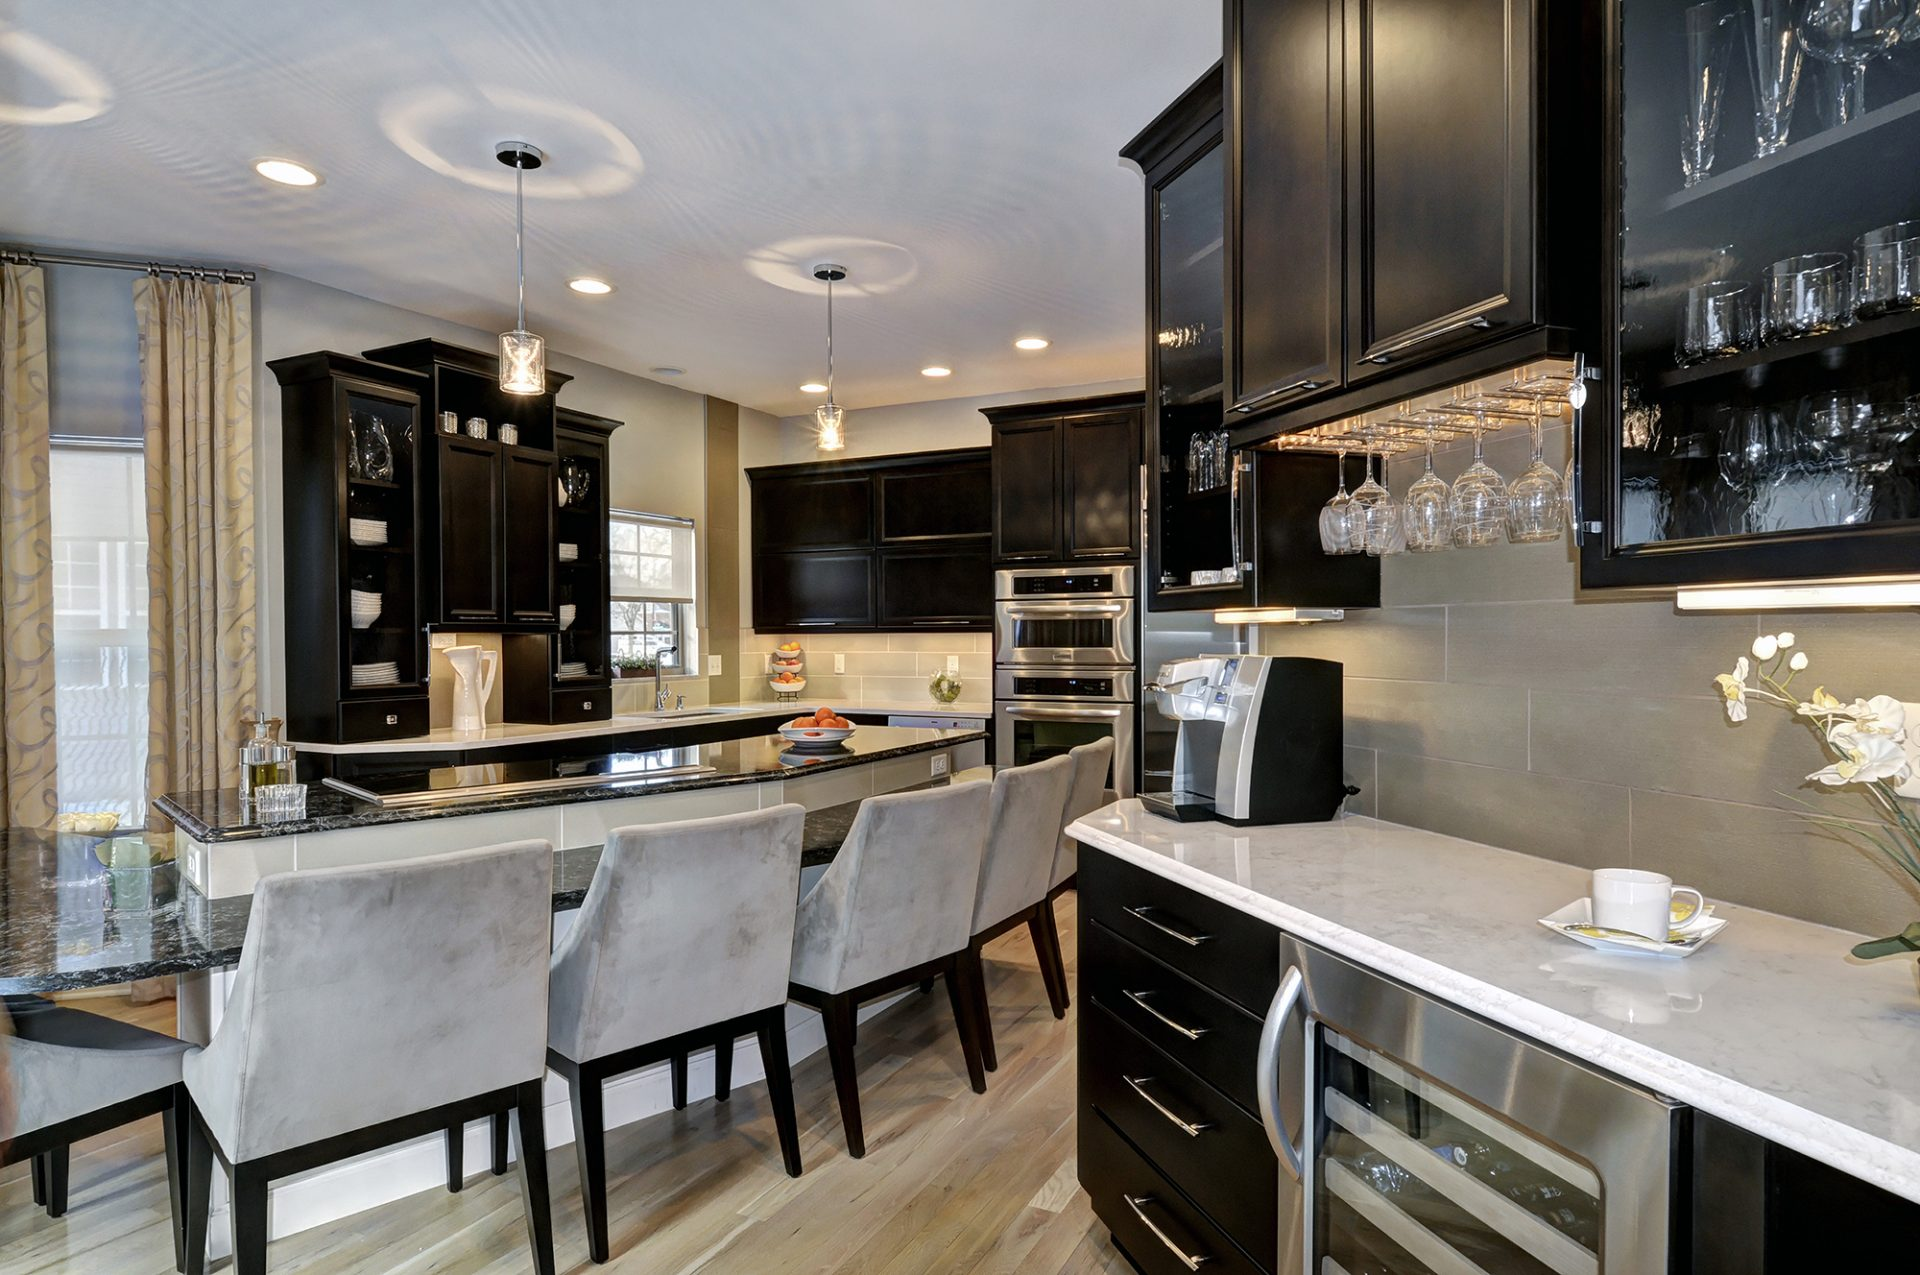 Kitchen, Westerville, Dave Fox, Remodel, black cabinets, large island, flat top range, coffee bar, granite,